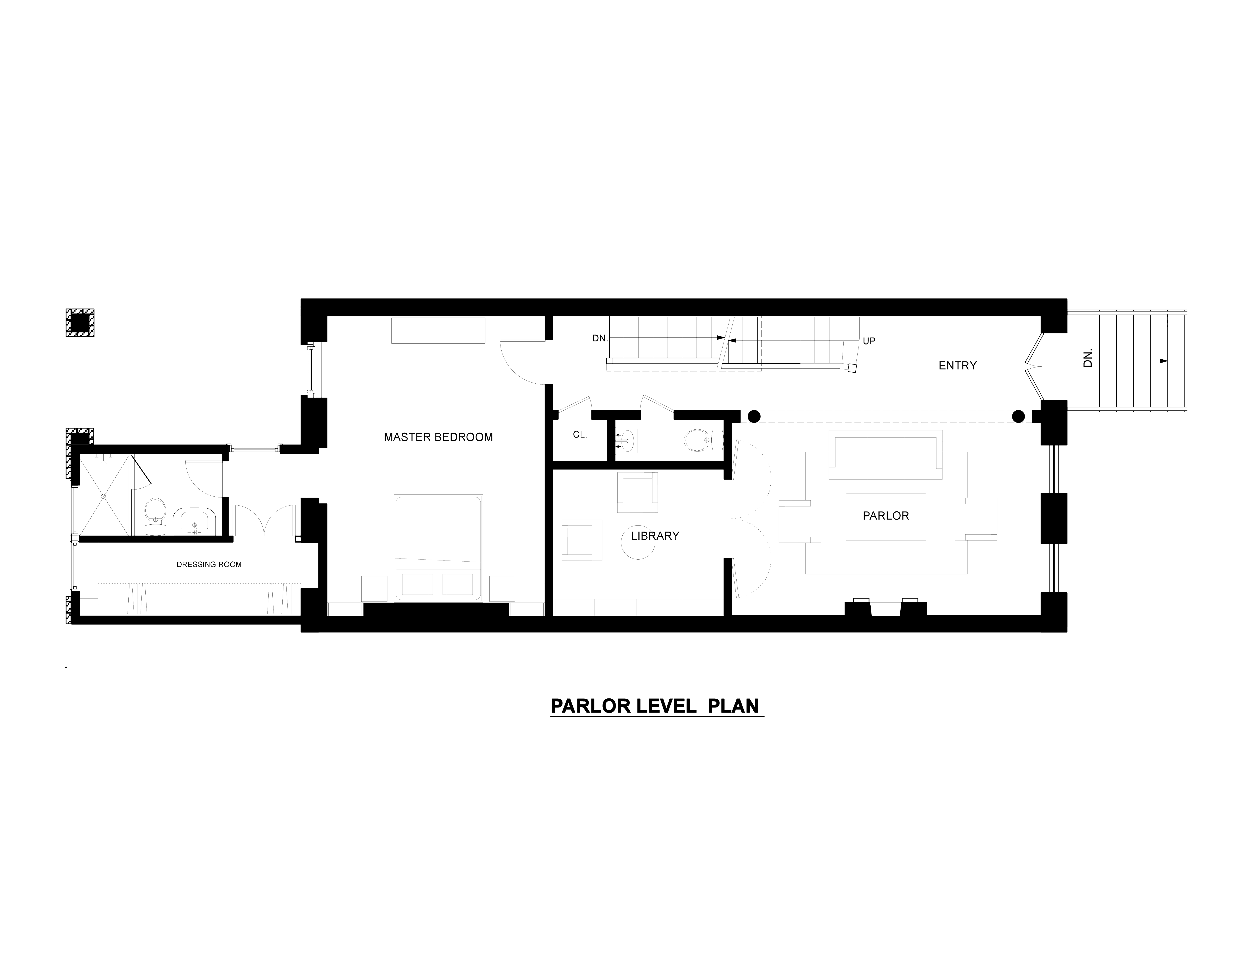 PARLOR LEVEL WITH LIBRARY AND MASTER SUITE